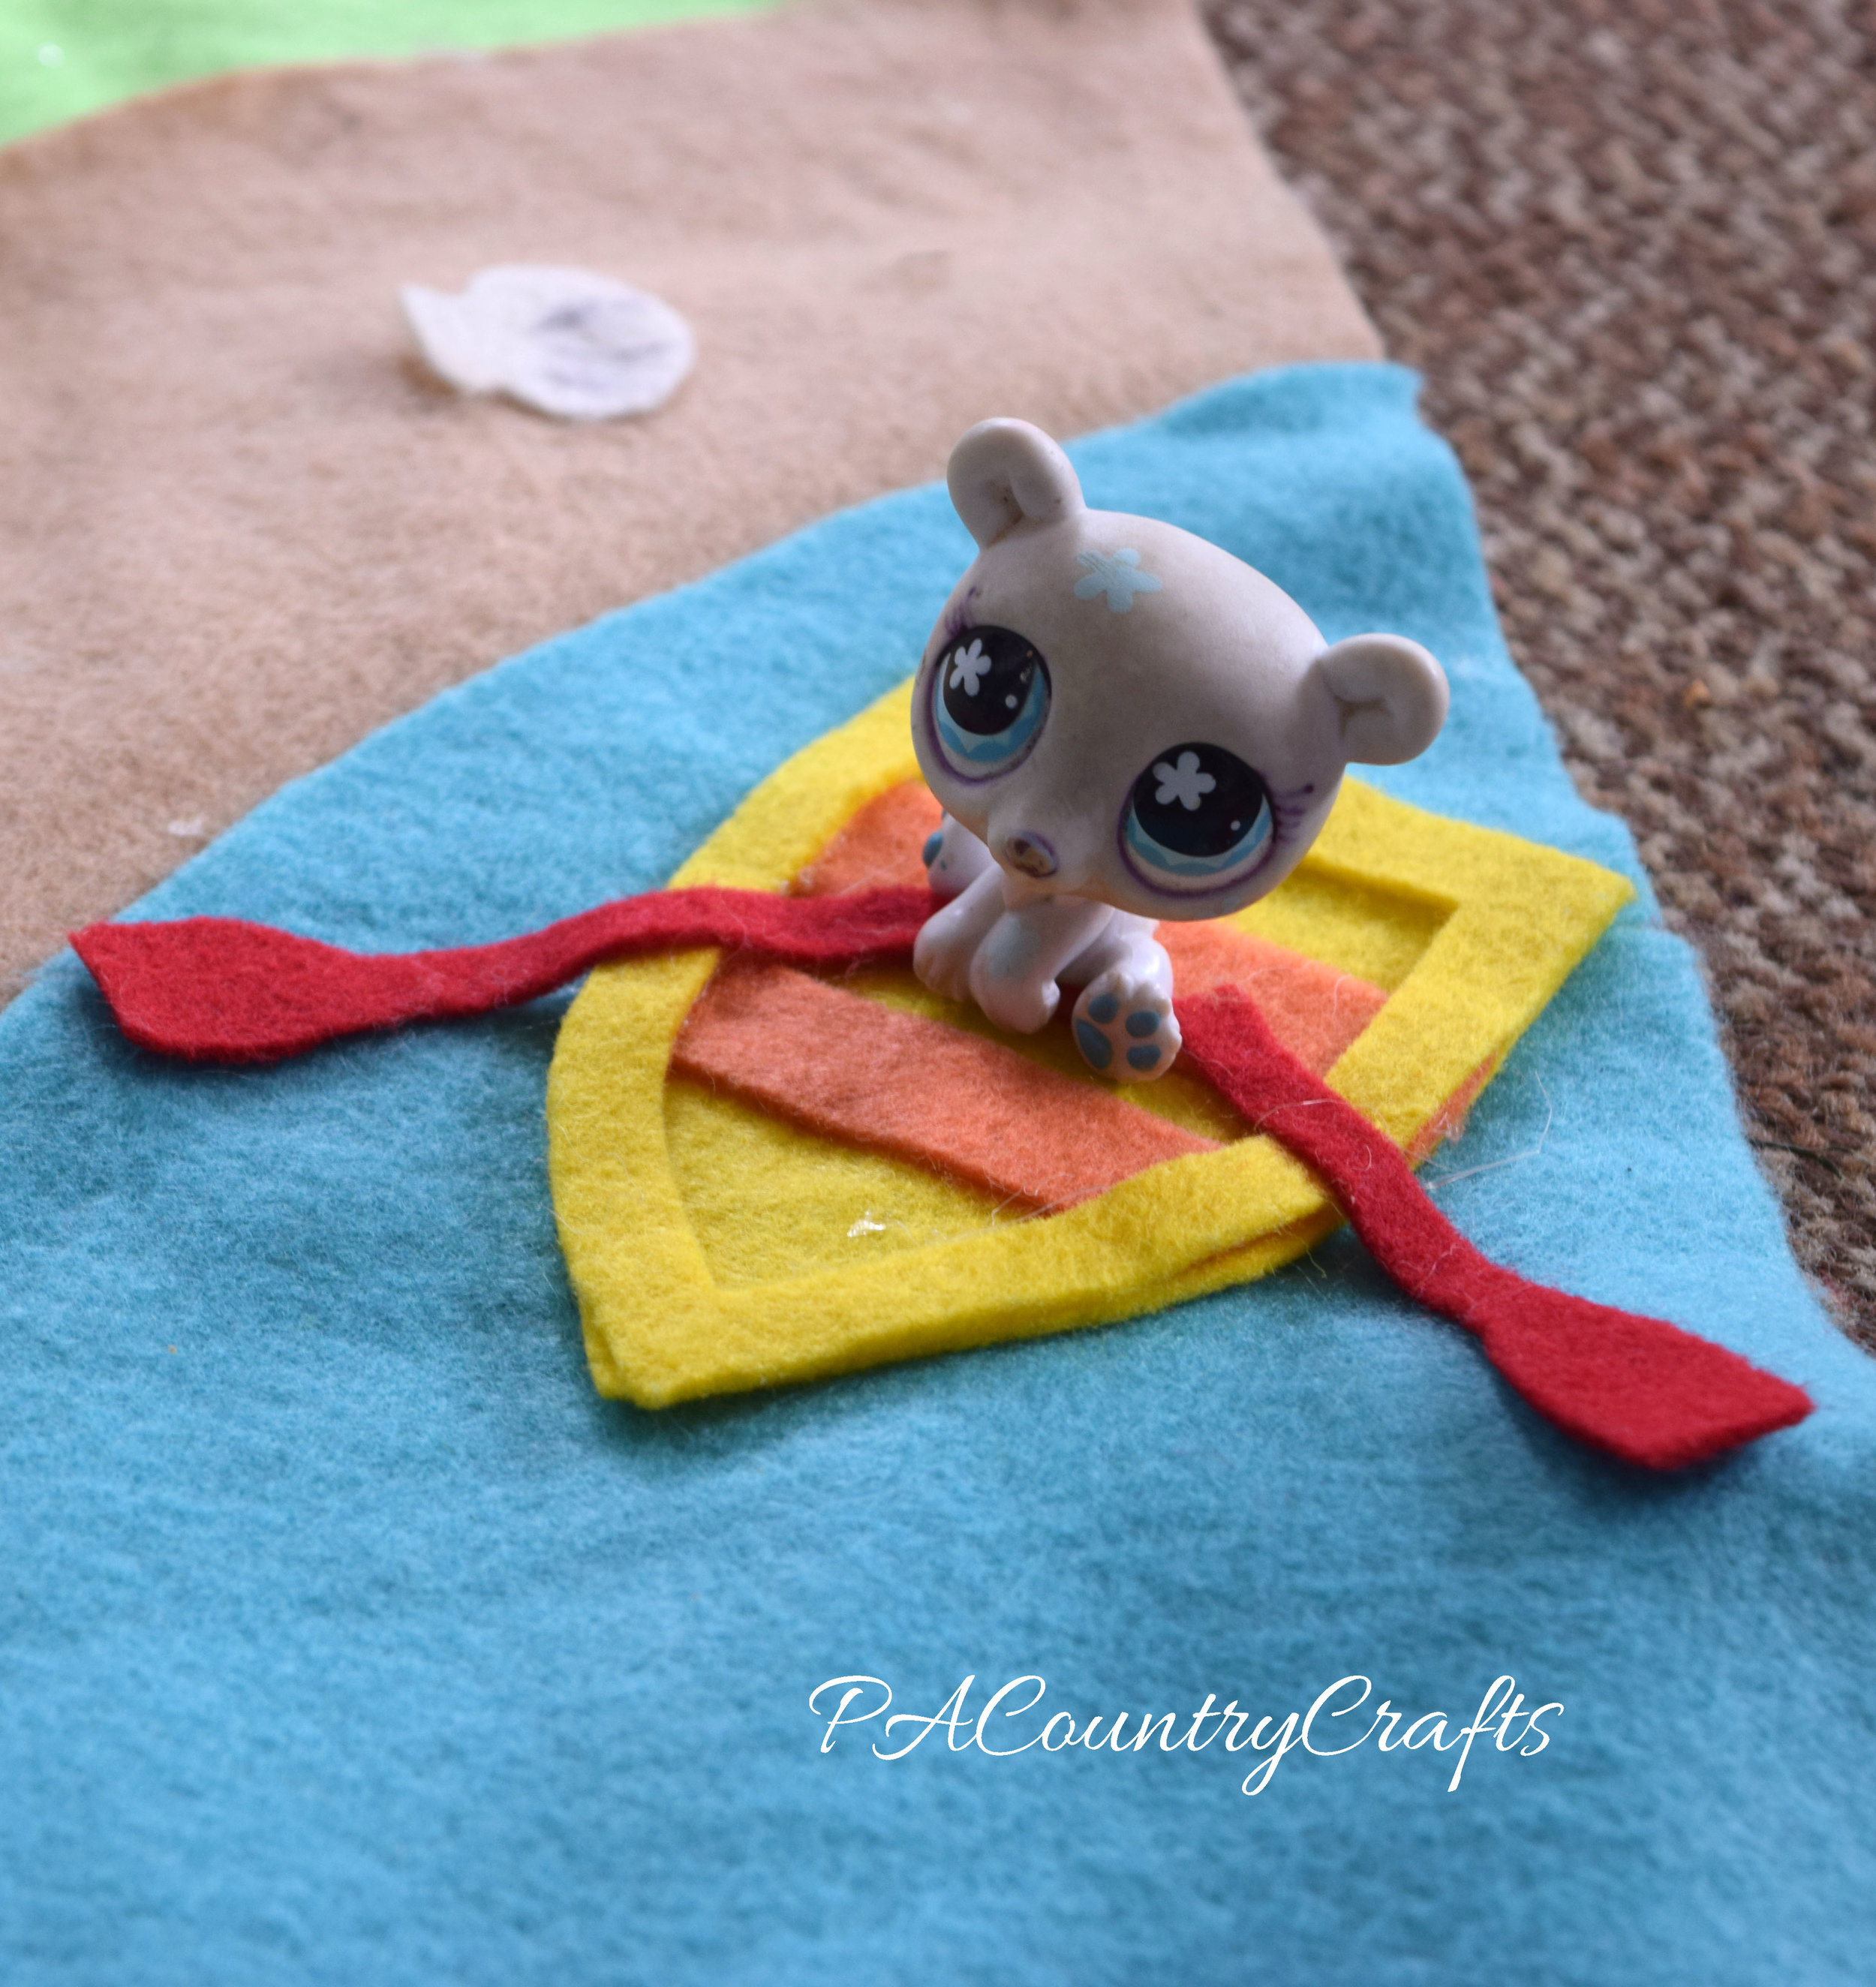 Felt boat in a beach scene play mat.